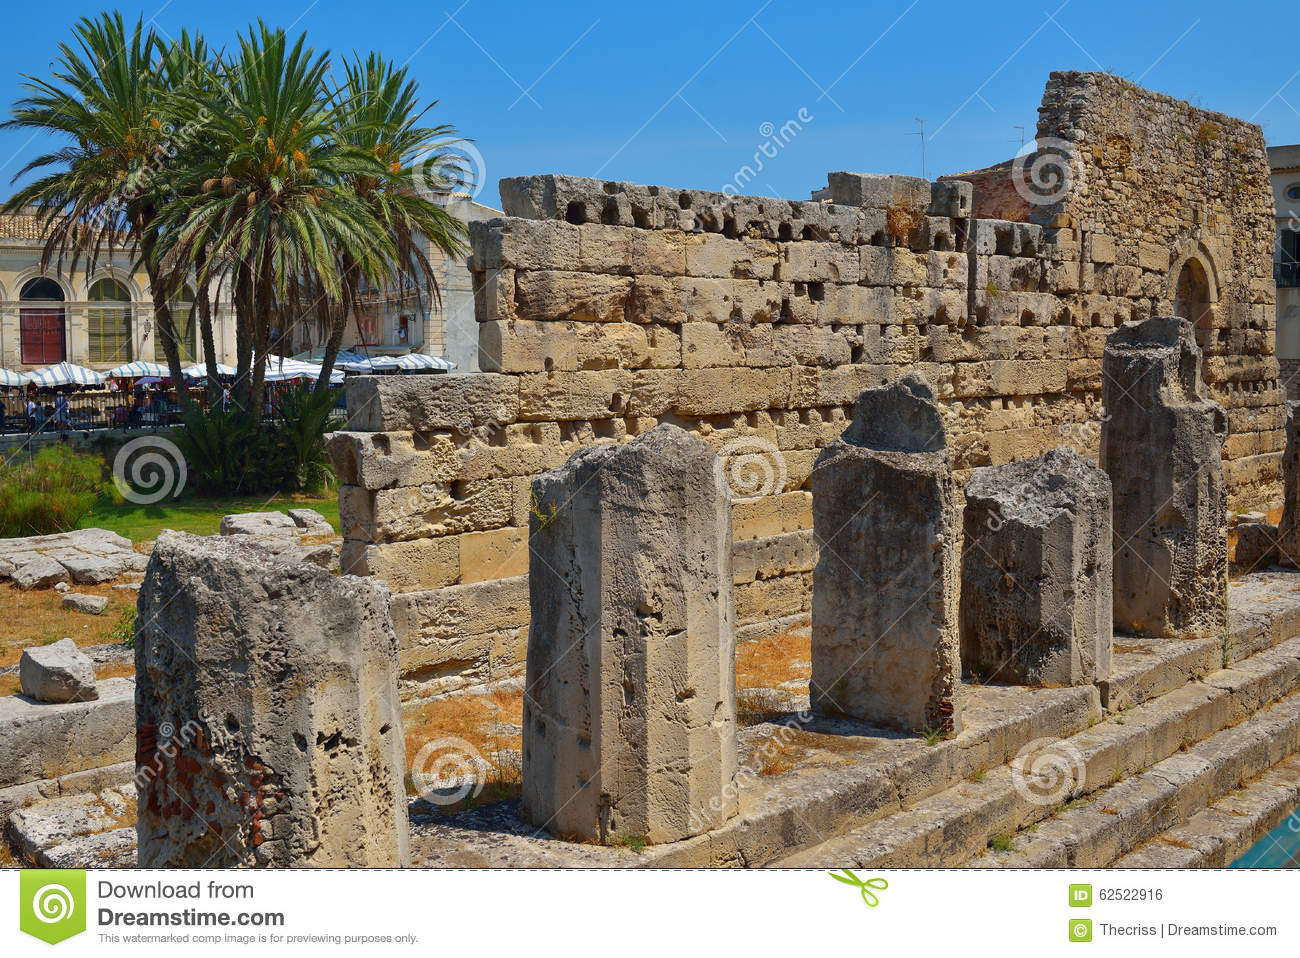 Ancient Greek Apollo Temple Ruins In Siracusa City Italy Stock.